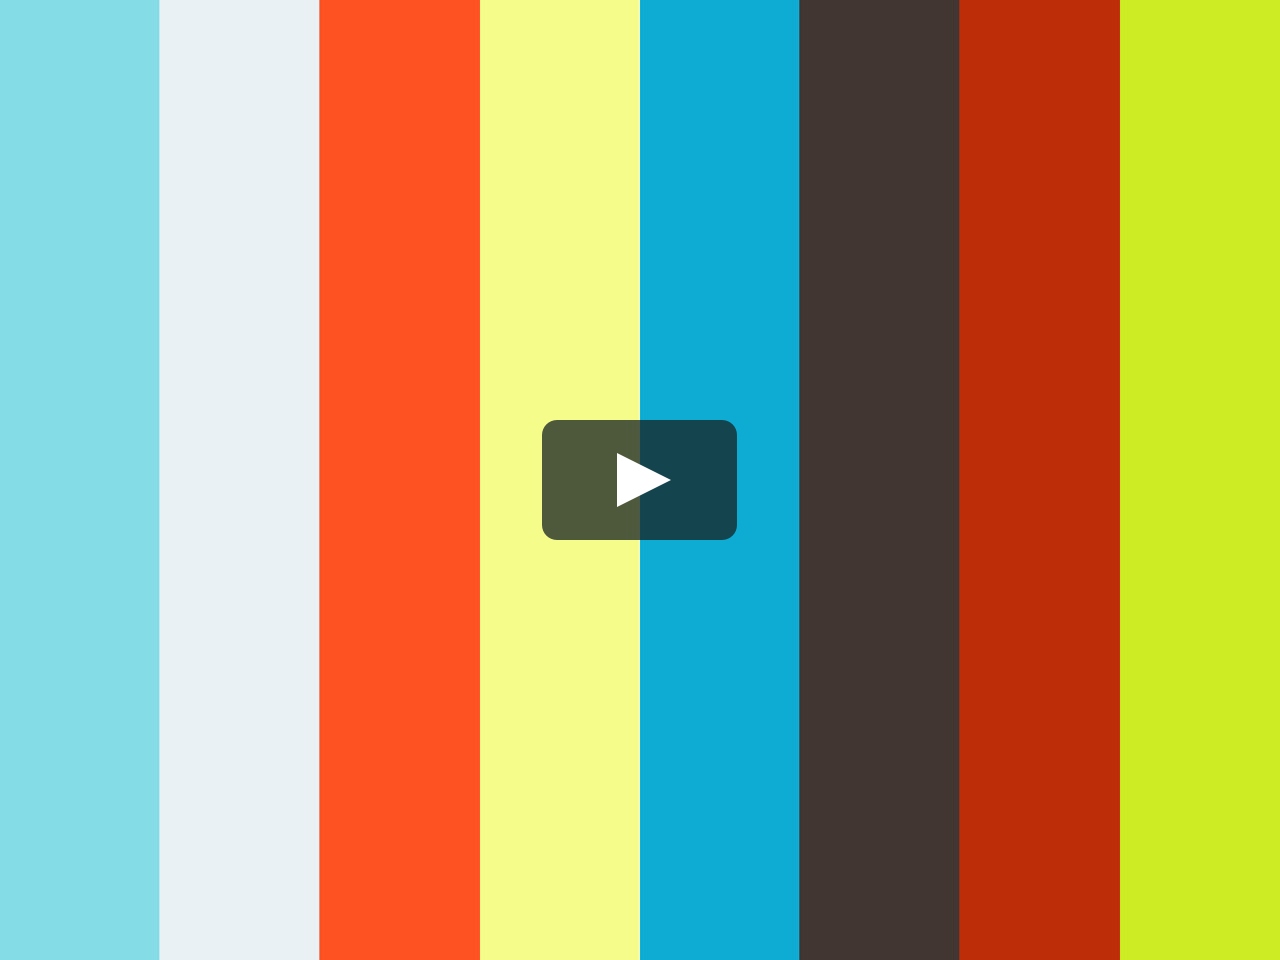 MOS VLSI Circuit Module 3 on Vimeo